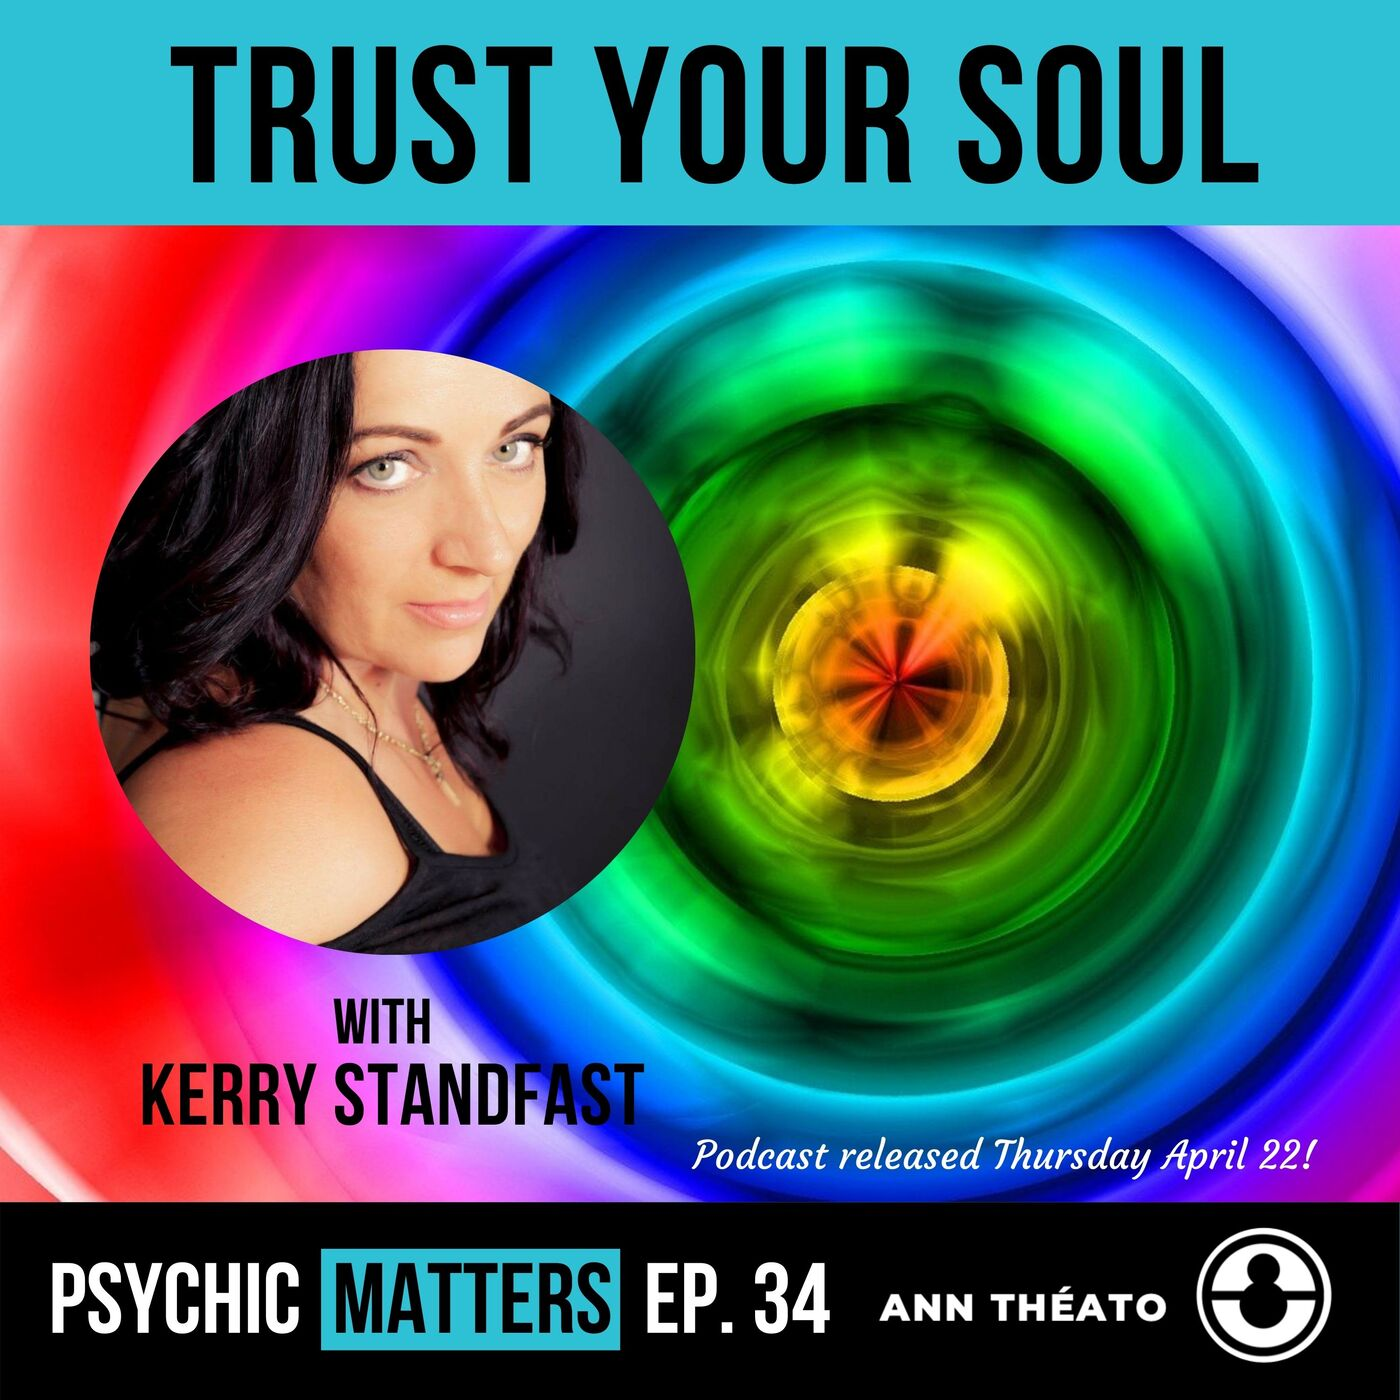 PM 034: Trust Your Soul with Kerry Standfast